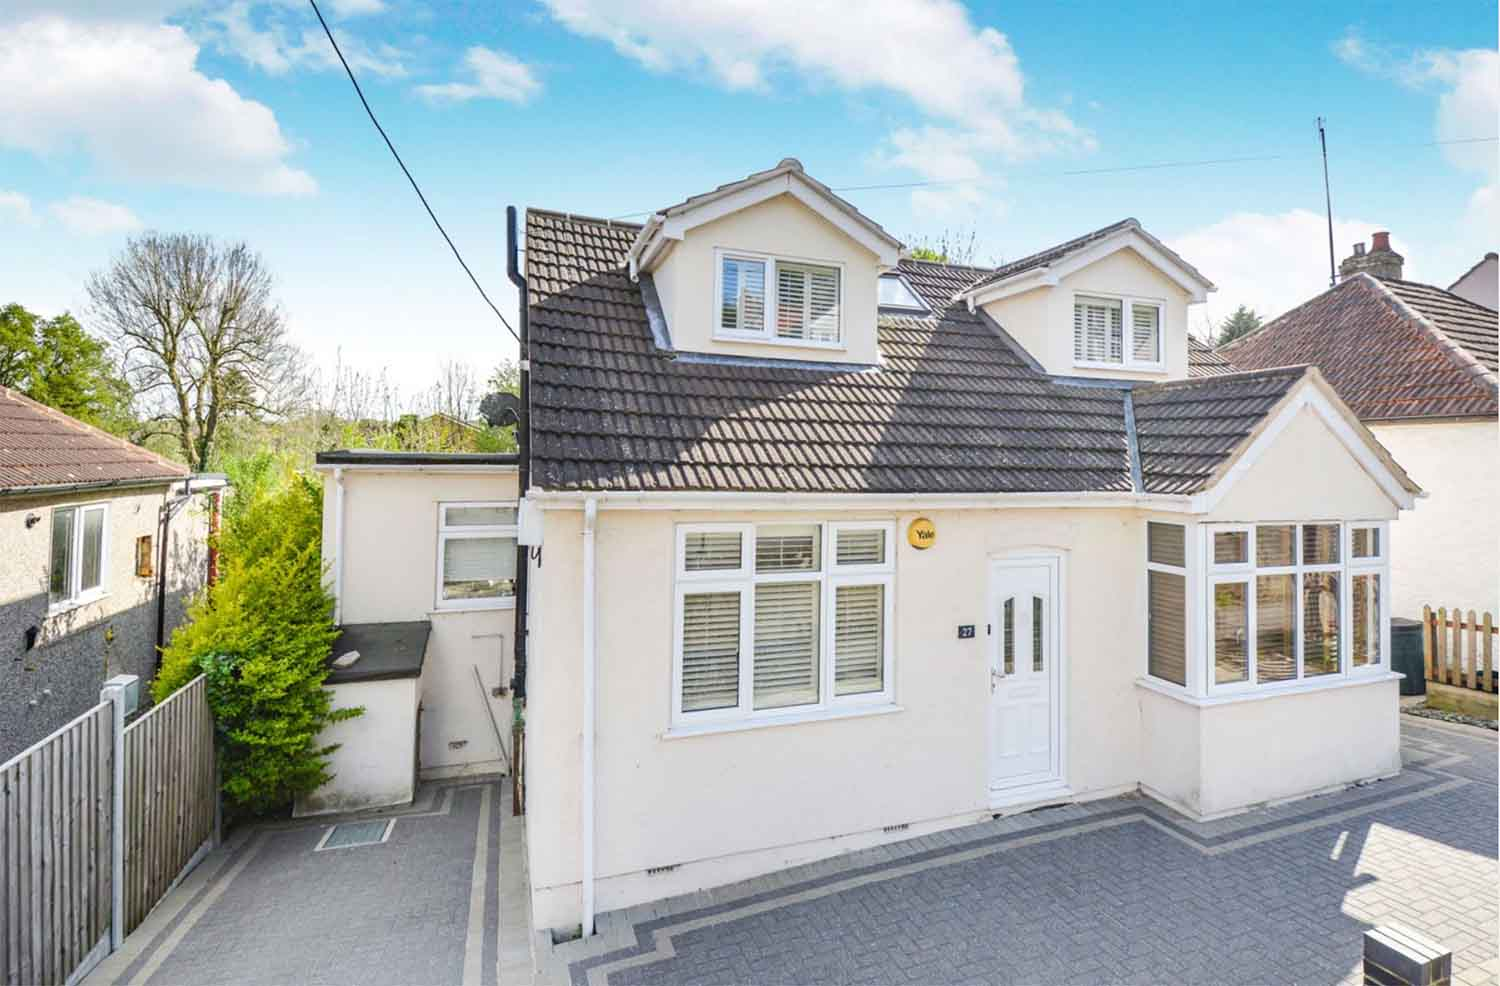 Buy a home of your own in Billericay. This property is on the market for £600,000. Image: Zoopla